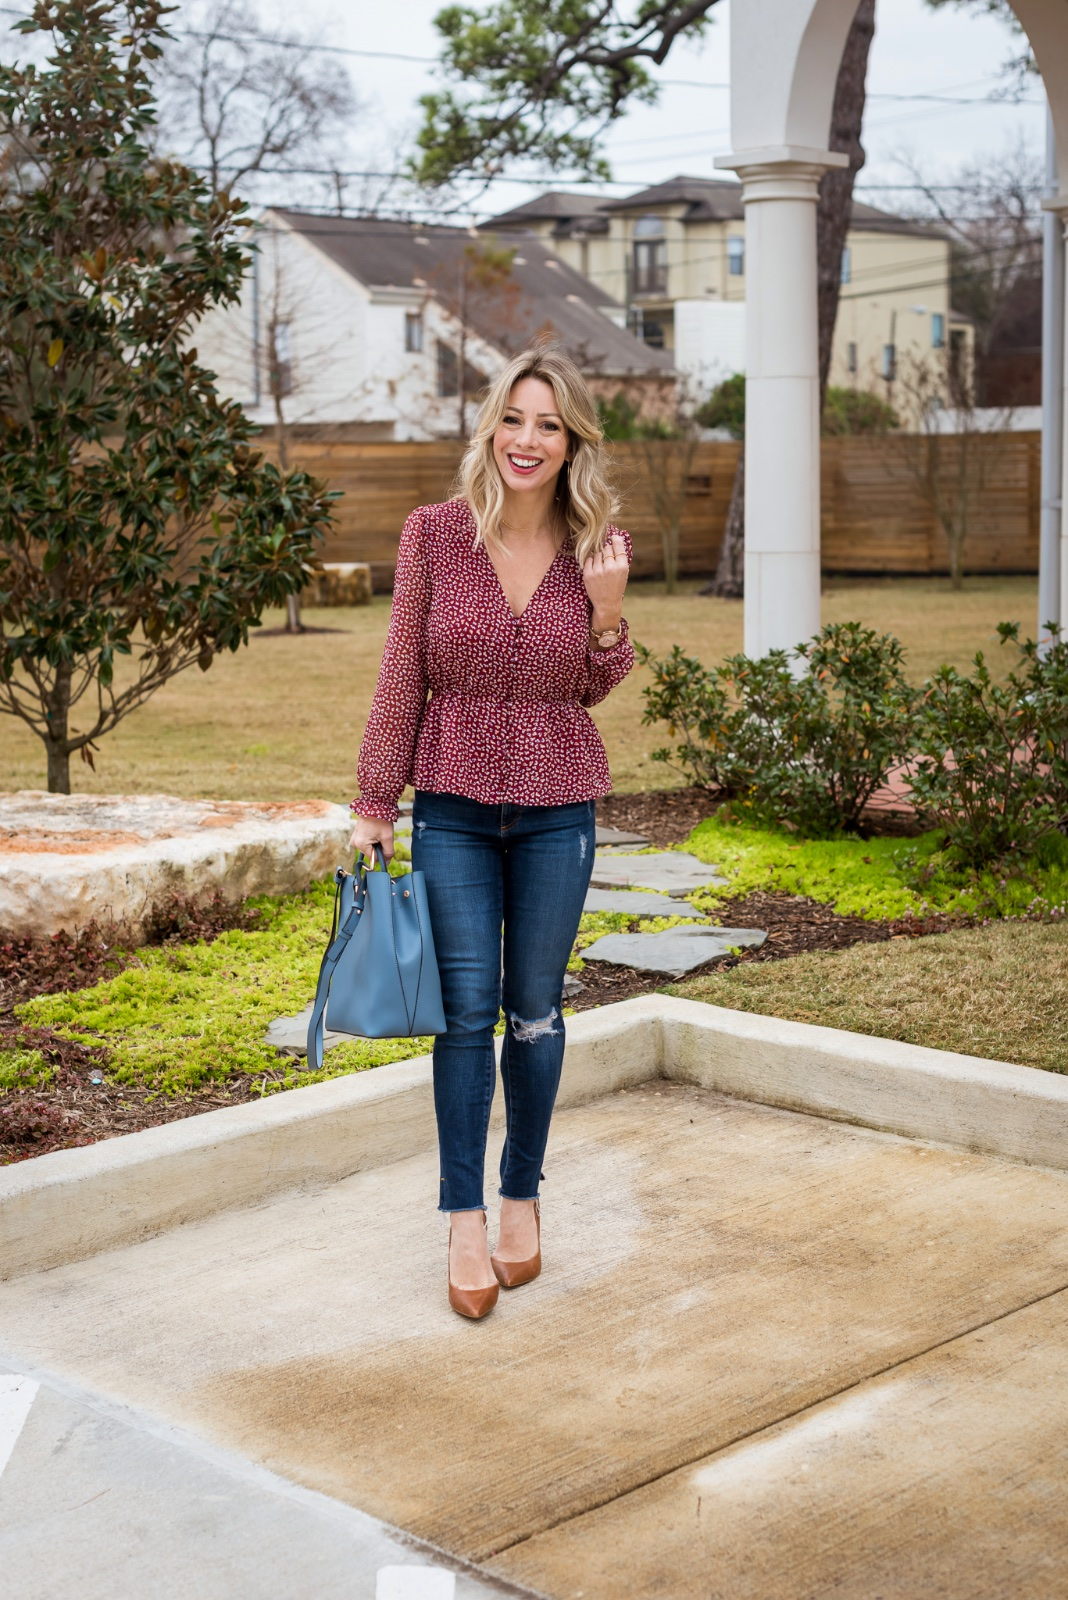 Jeans and red blouse